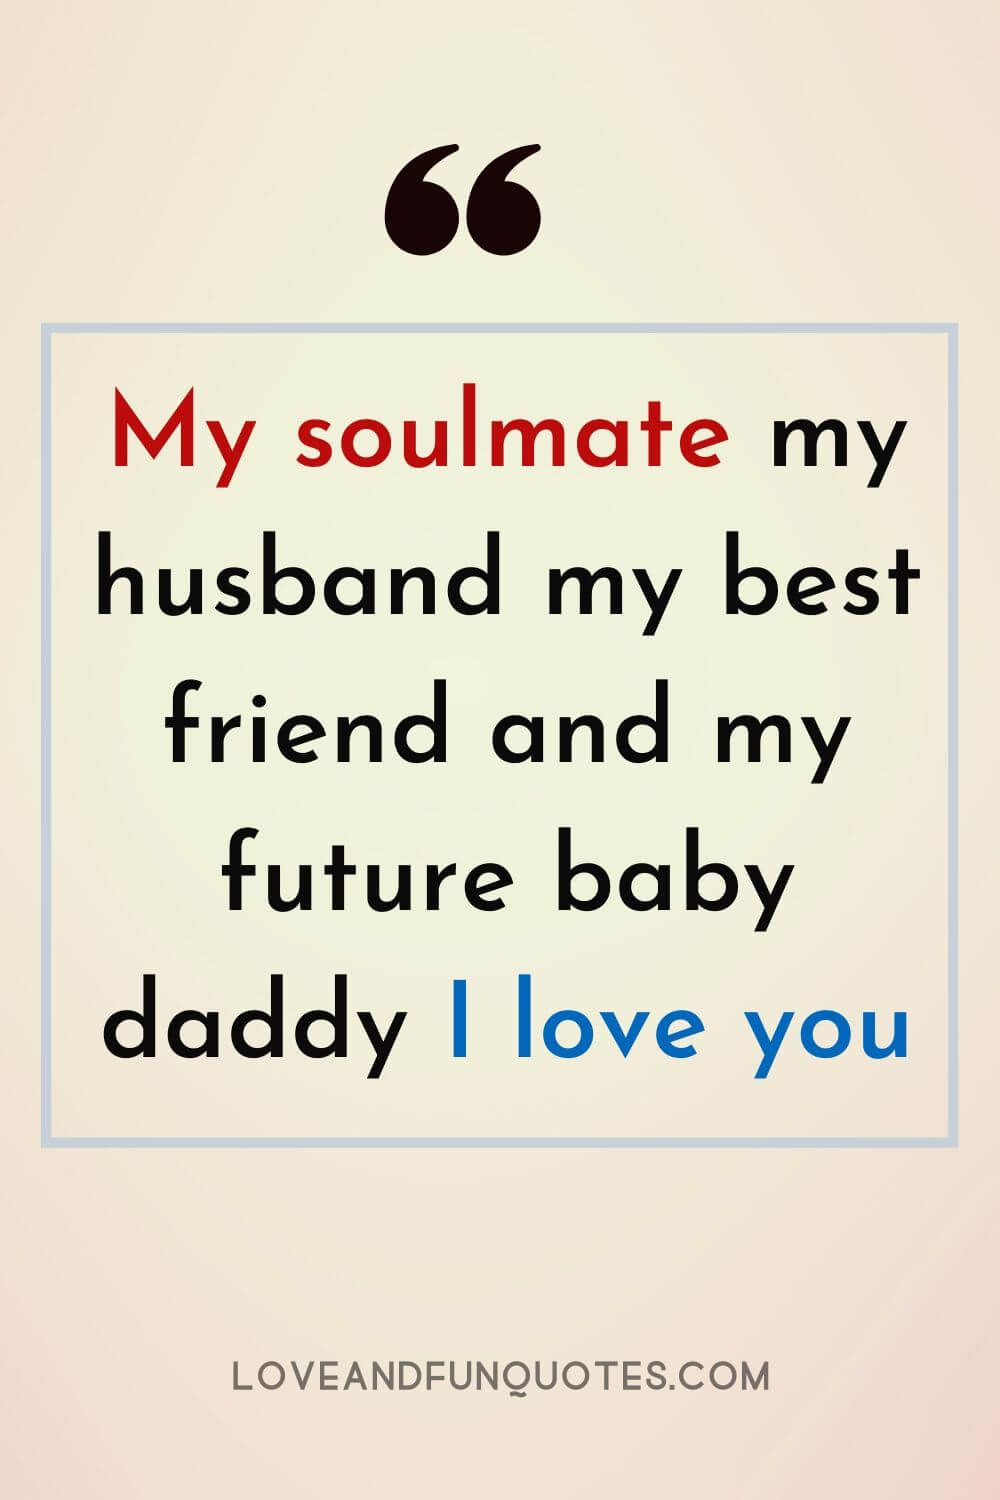 Love And Fun Quotes 240 Love And Fun Quotes Love You Funny Quotes I Love You Funny True Love Quotes For Him